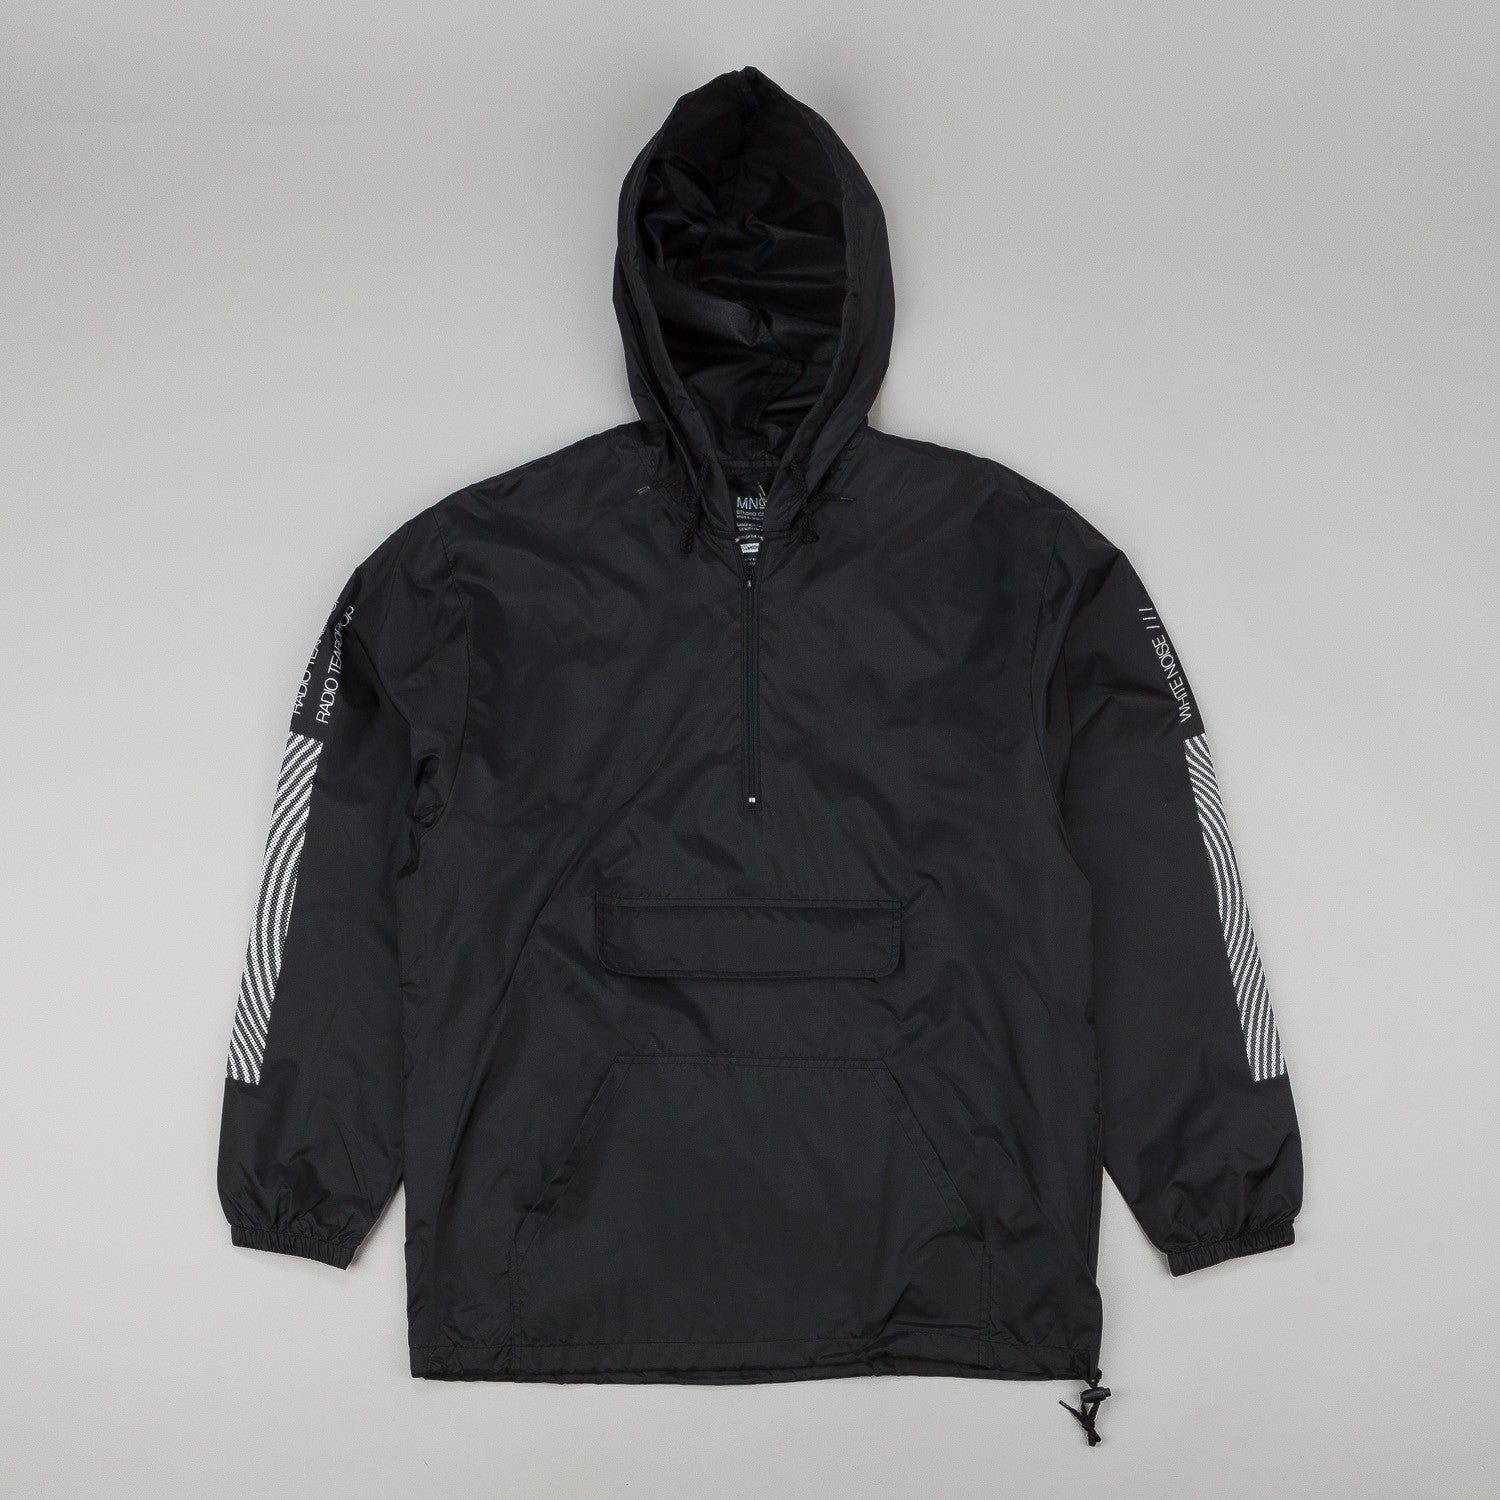 MN07 Radio Tear Drop Packable Jacket